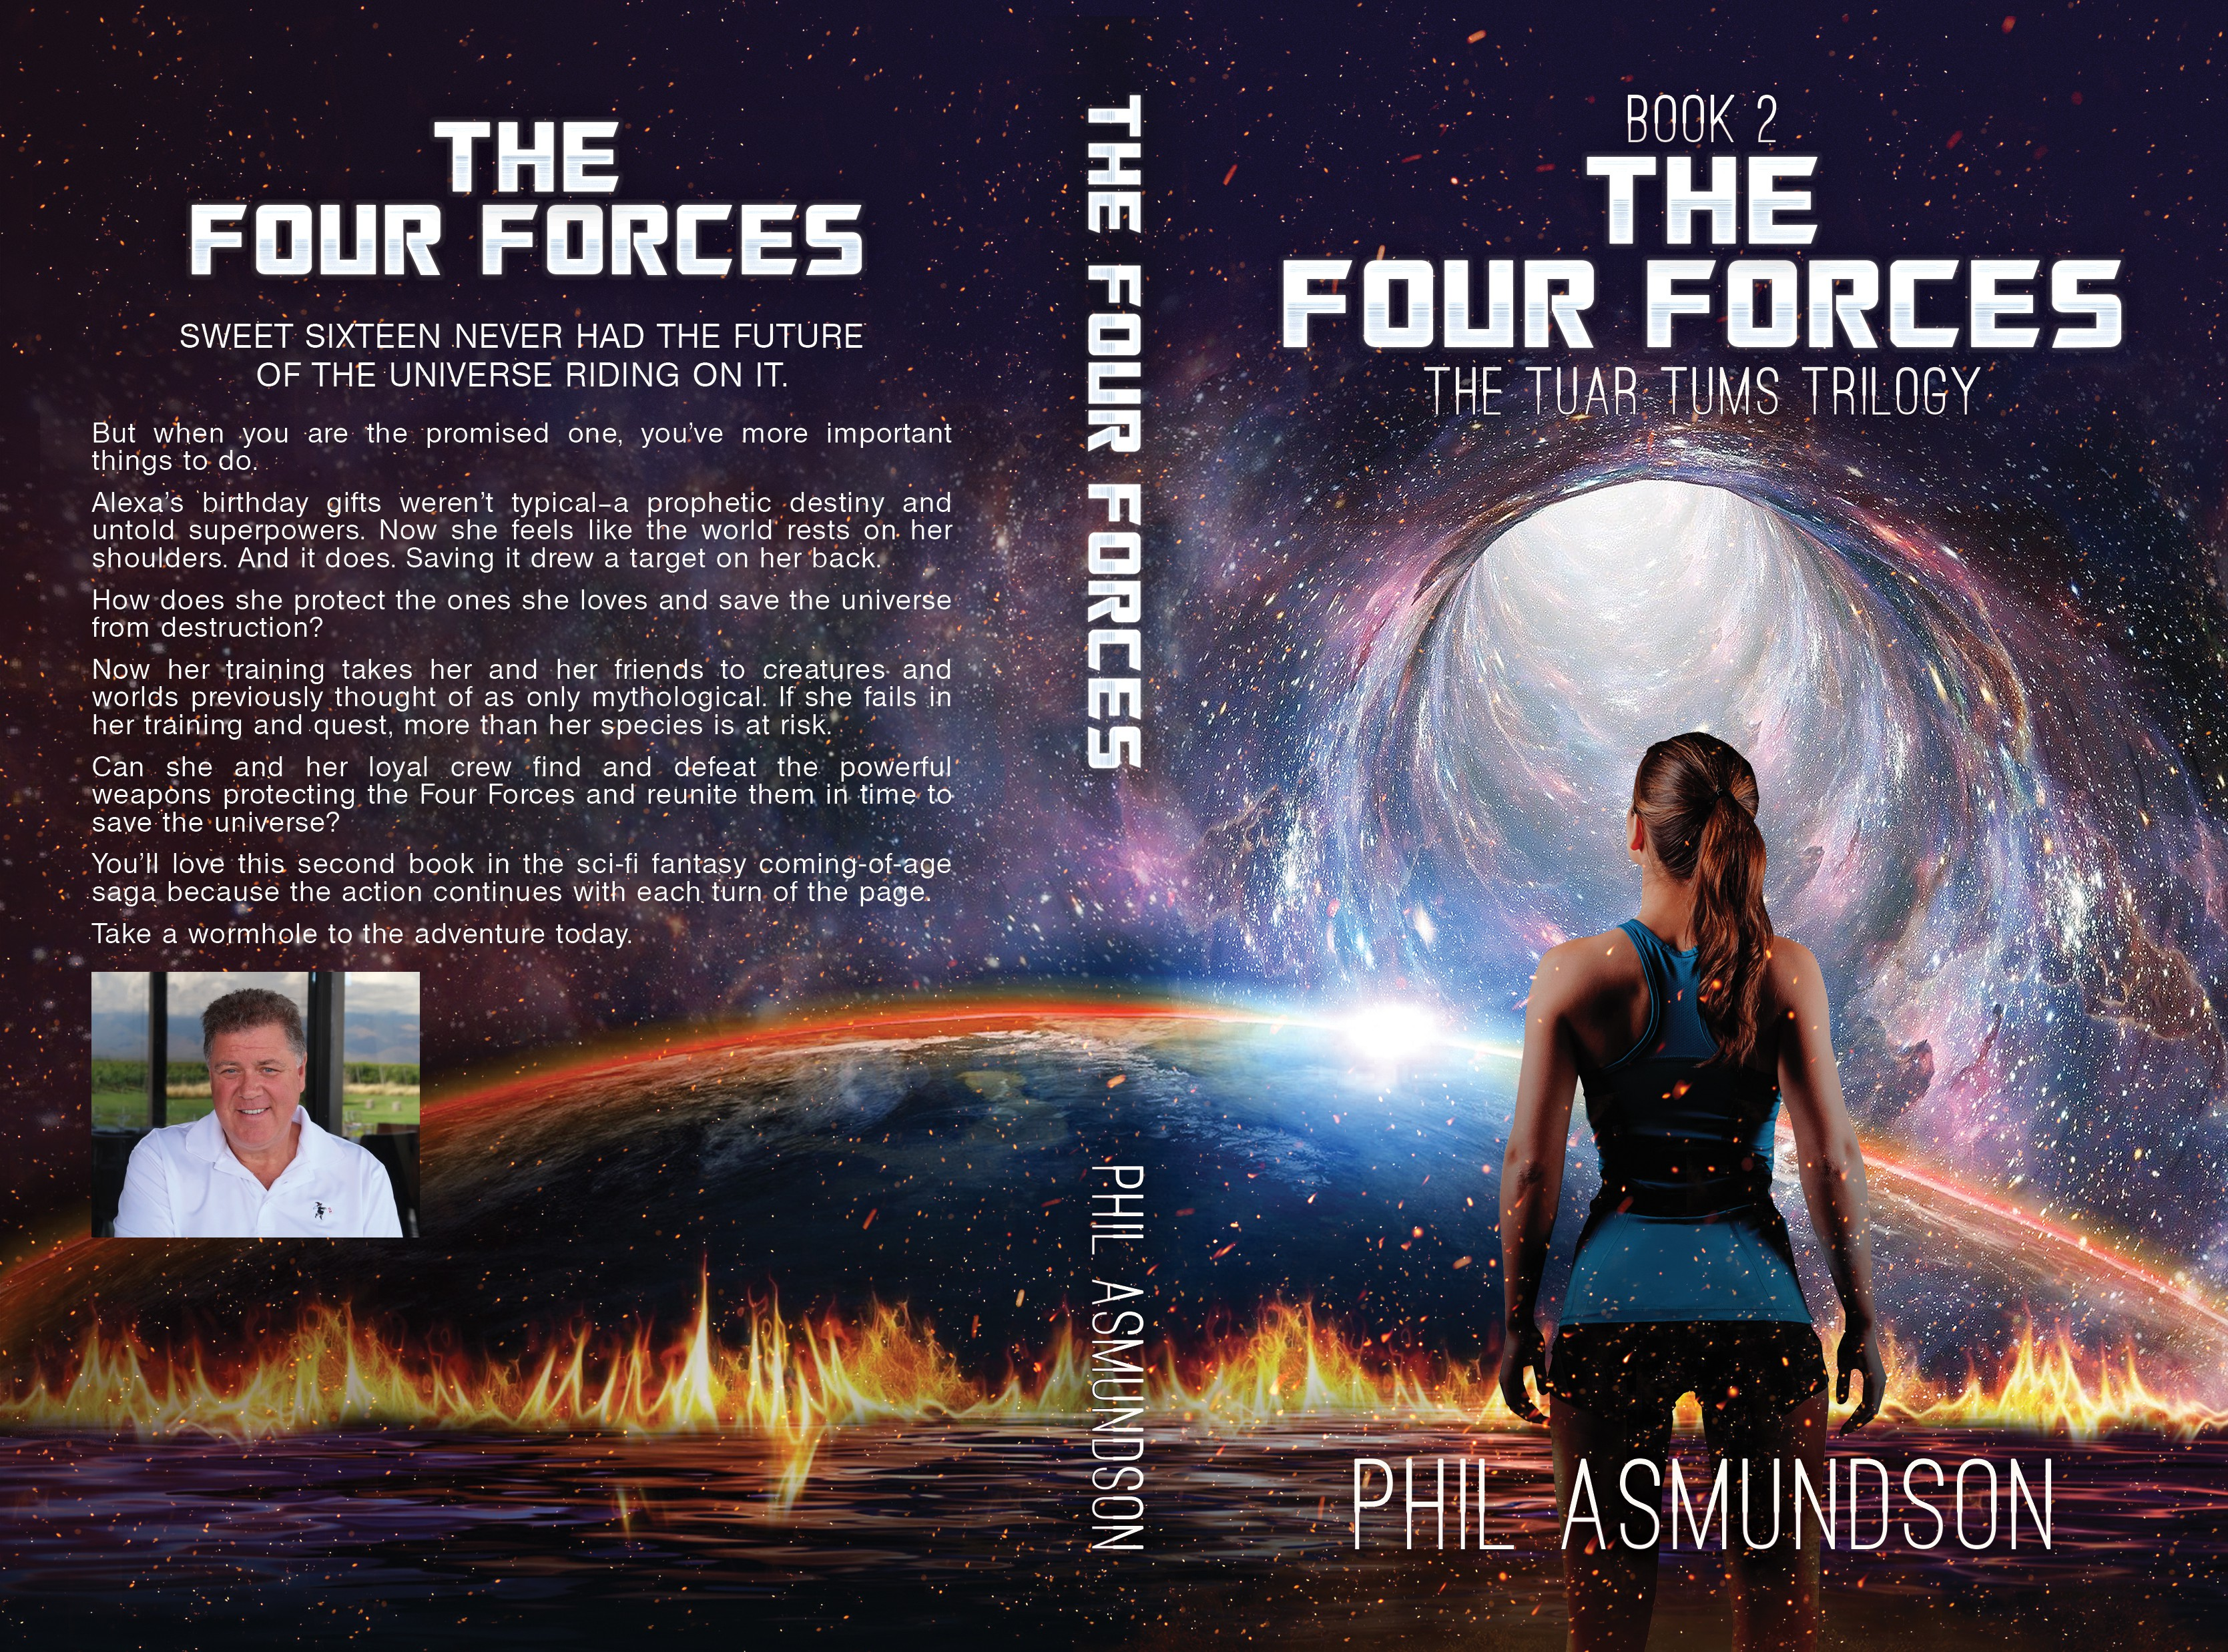 Book cover for second book in hard science fiction novel trilogy